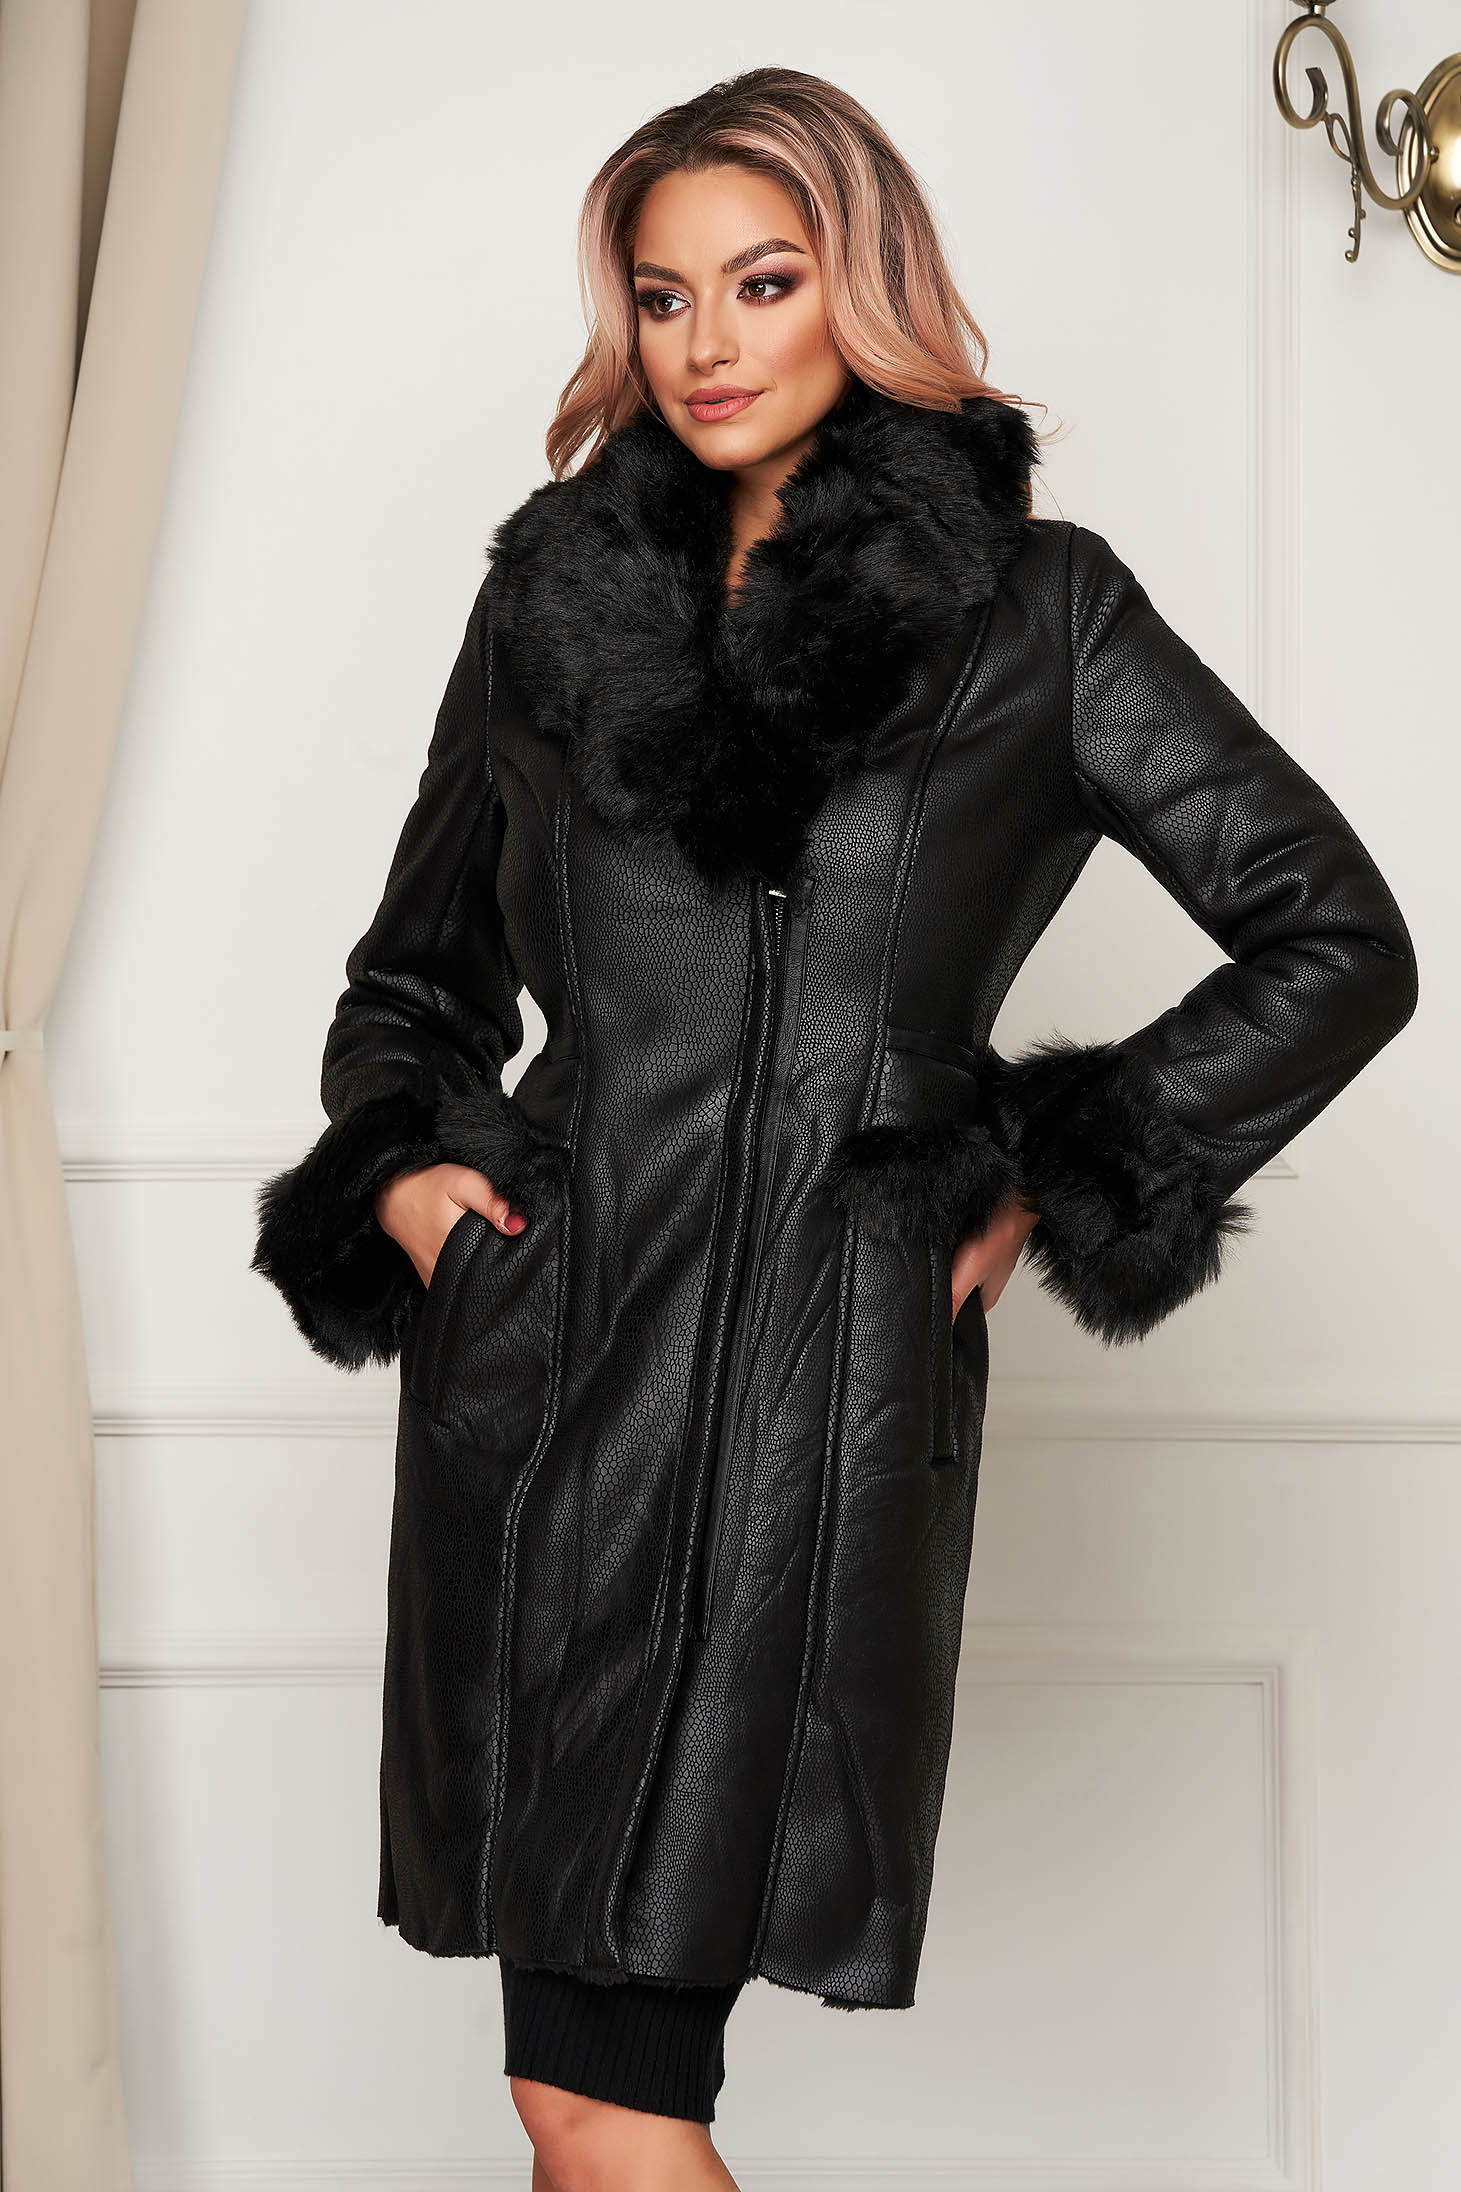 Black jacket casual midi from ecological leather with faux fur details